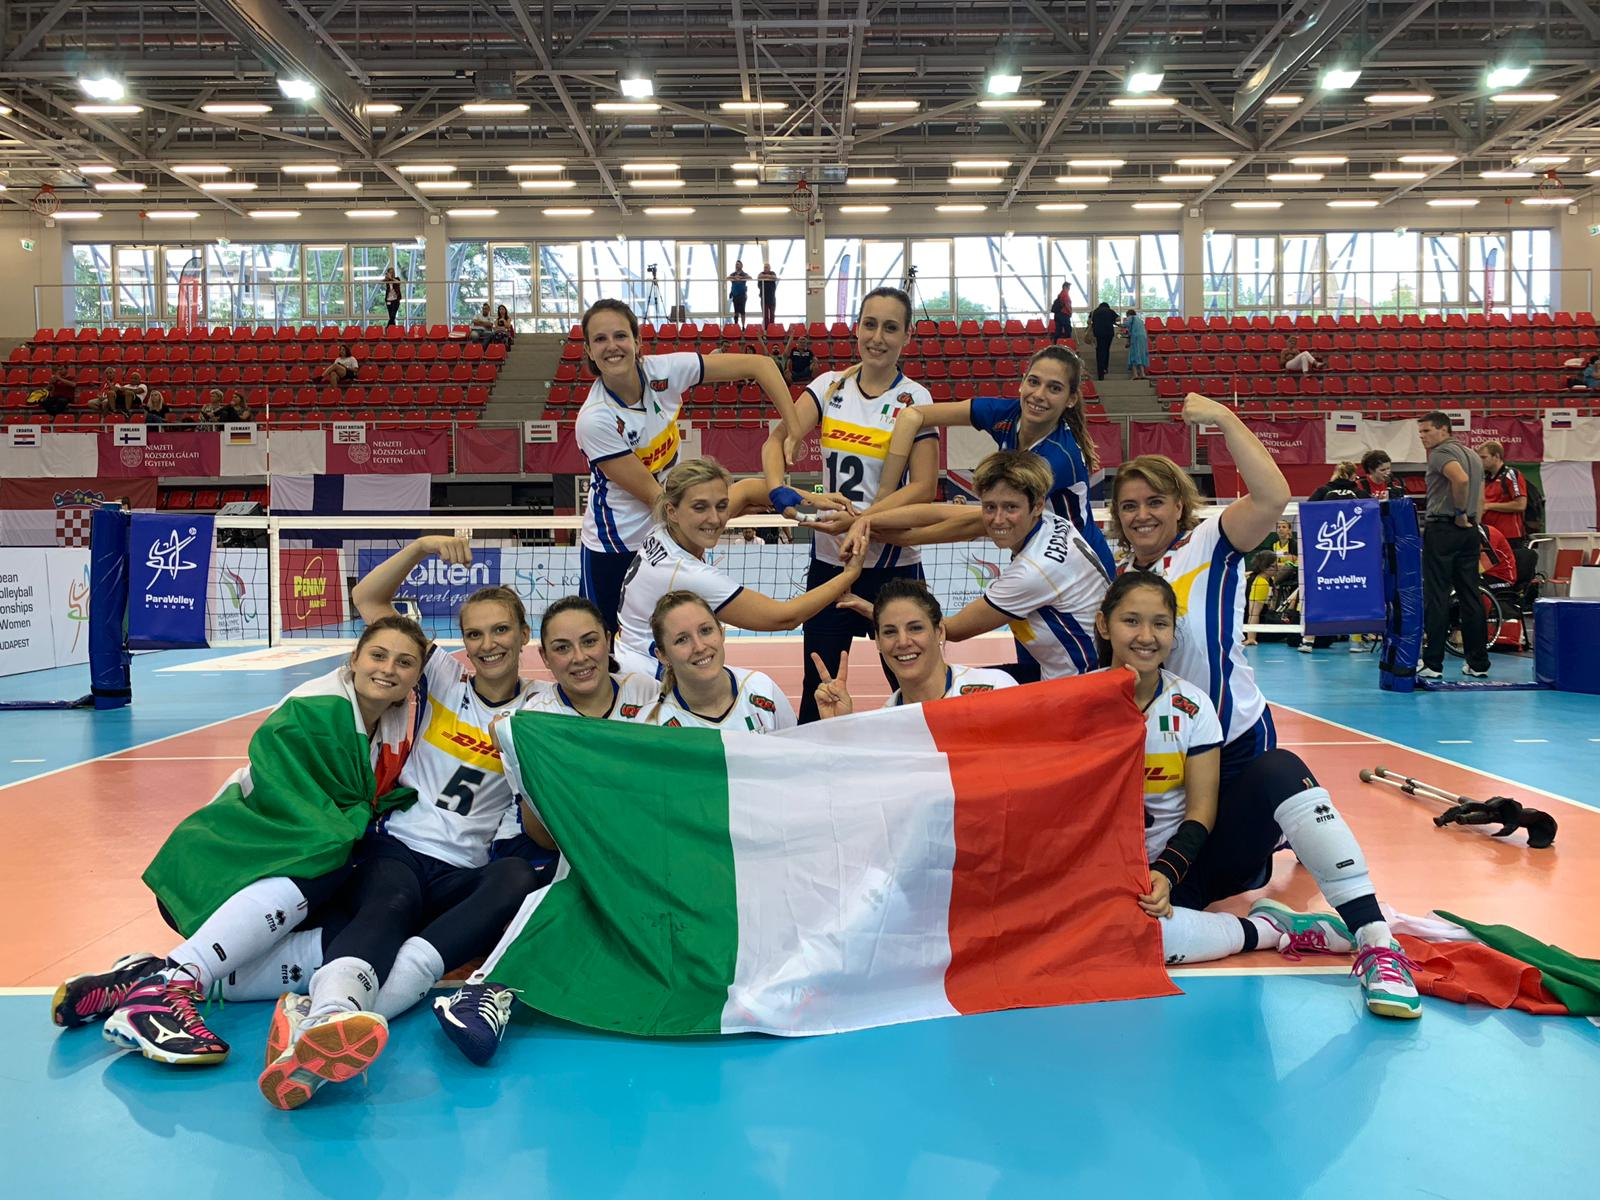 L'Italia del Sitting Volley è in finale dell'Europeo